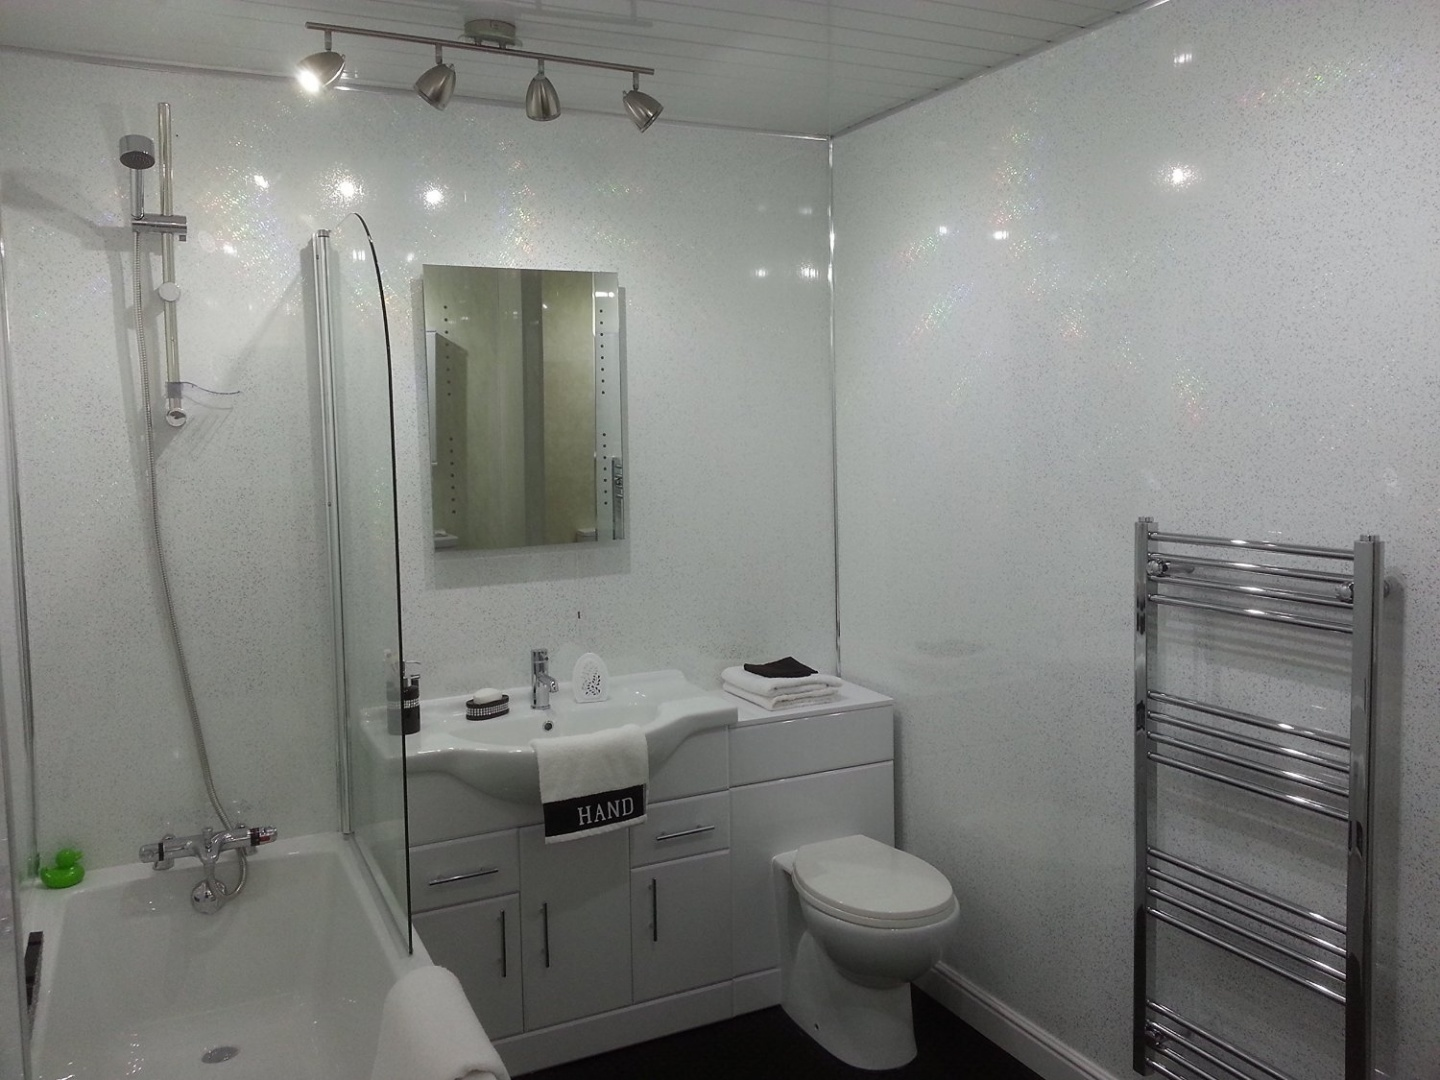 5 White Sparkle Diamond Effect Pvc Bathroom Cladding Shower Wall Panels By Bcs Panels Shop Online For Homeware In Australia